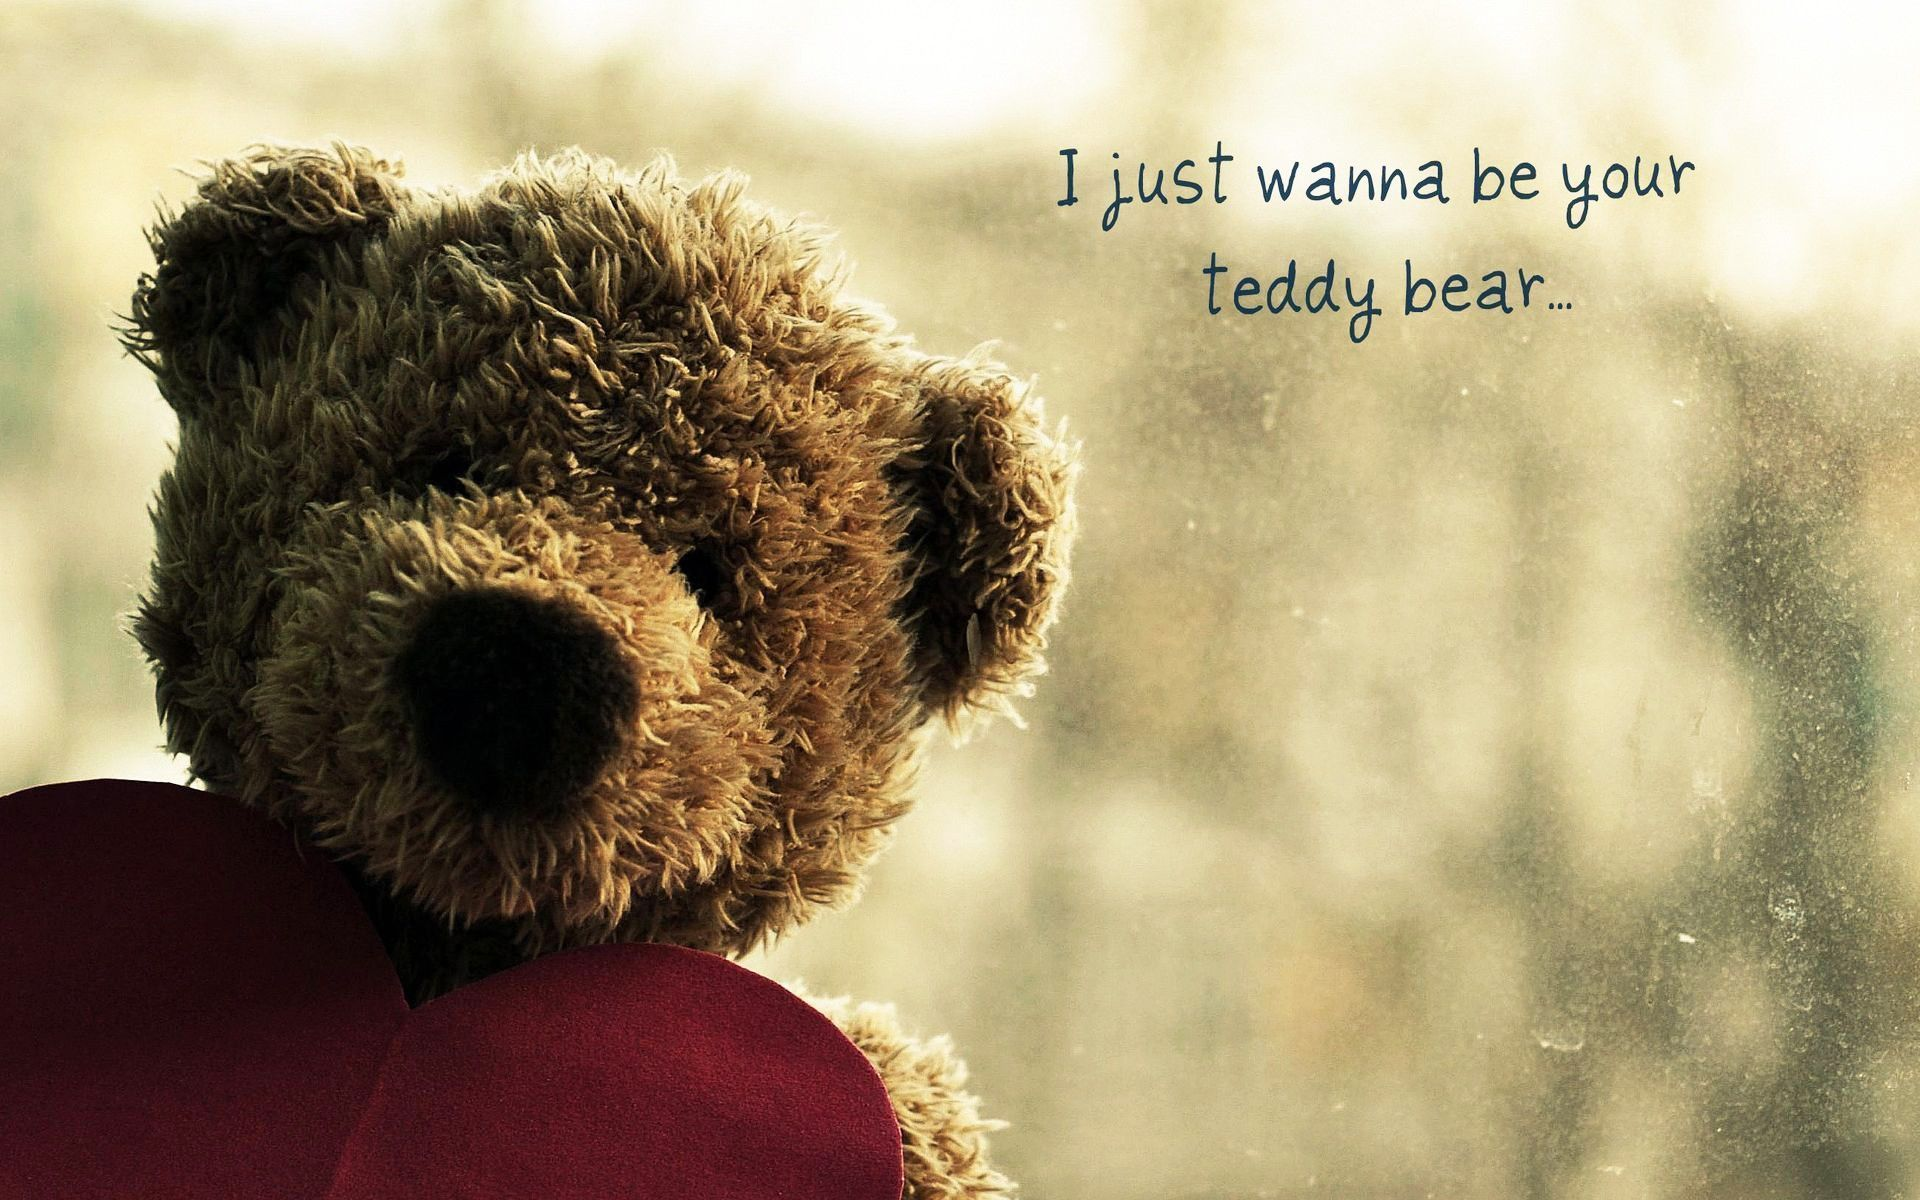 Teddy Bear Cute Funny Wallpaper Download All Things Are Bright And